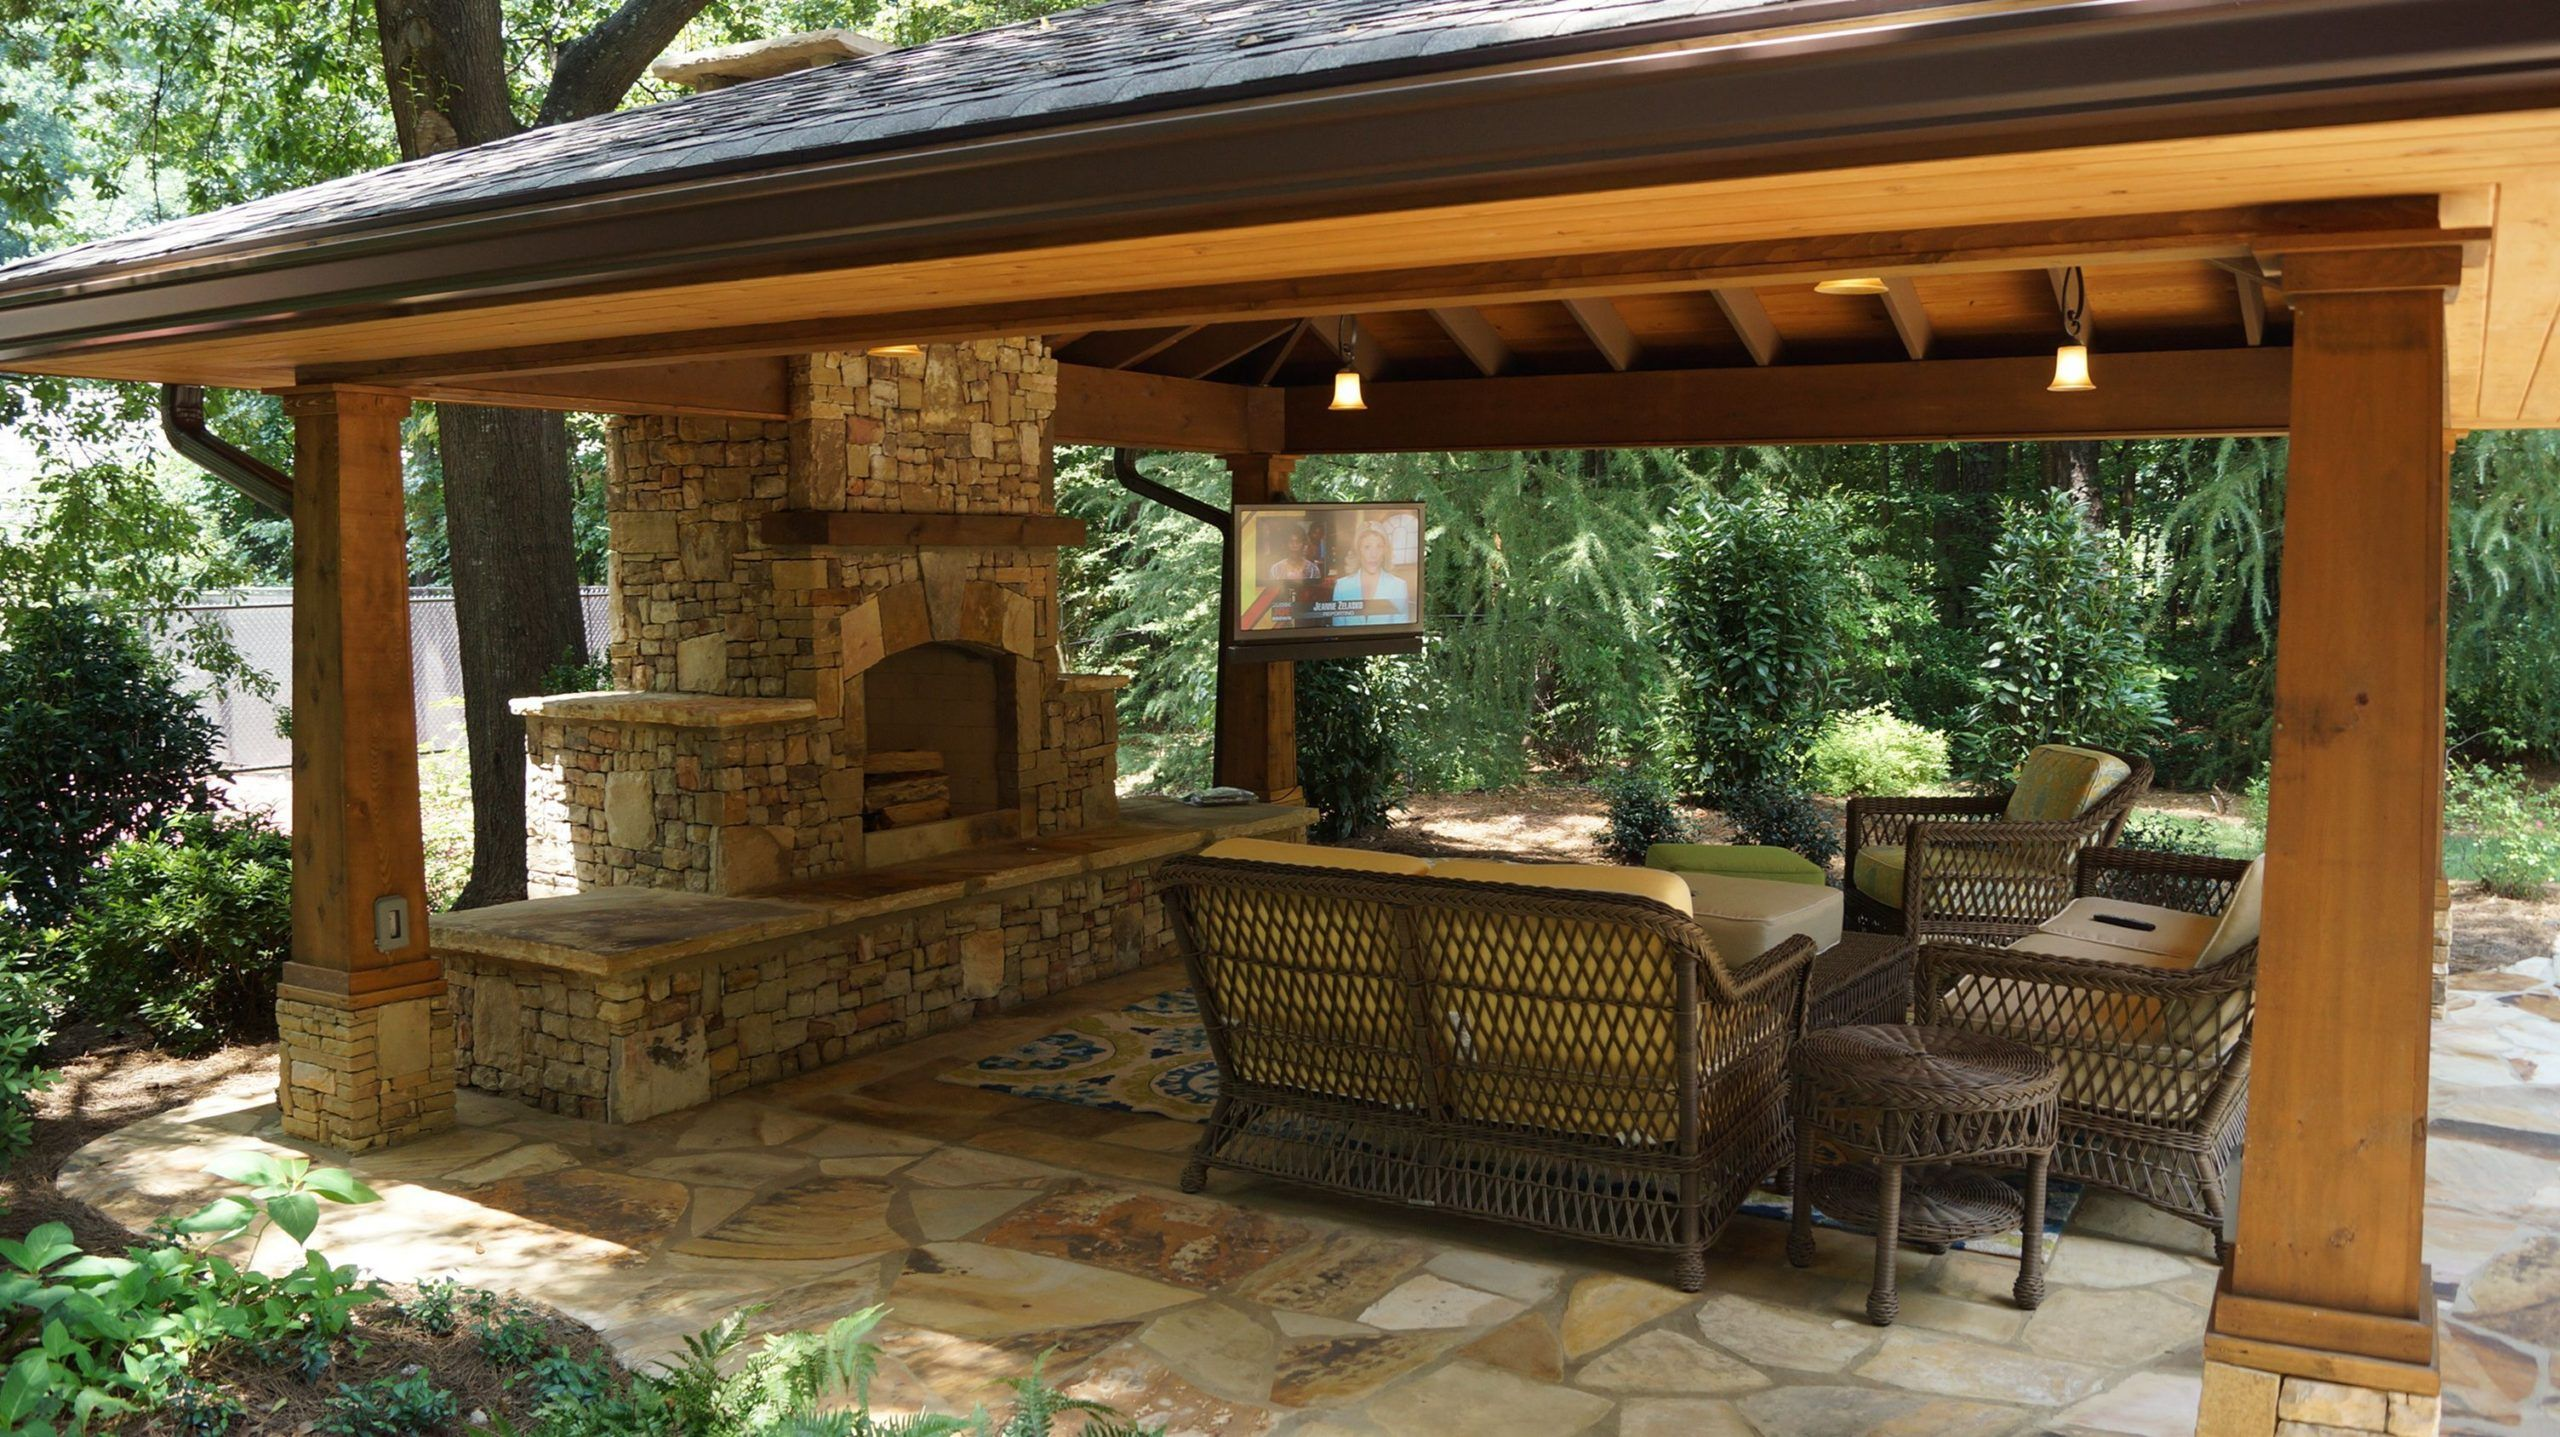 20 Comfortable Outdoor Living Space Ideas For Outdoor Space In 2020 Outdoor Living Space Design Outdoor Living